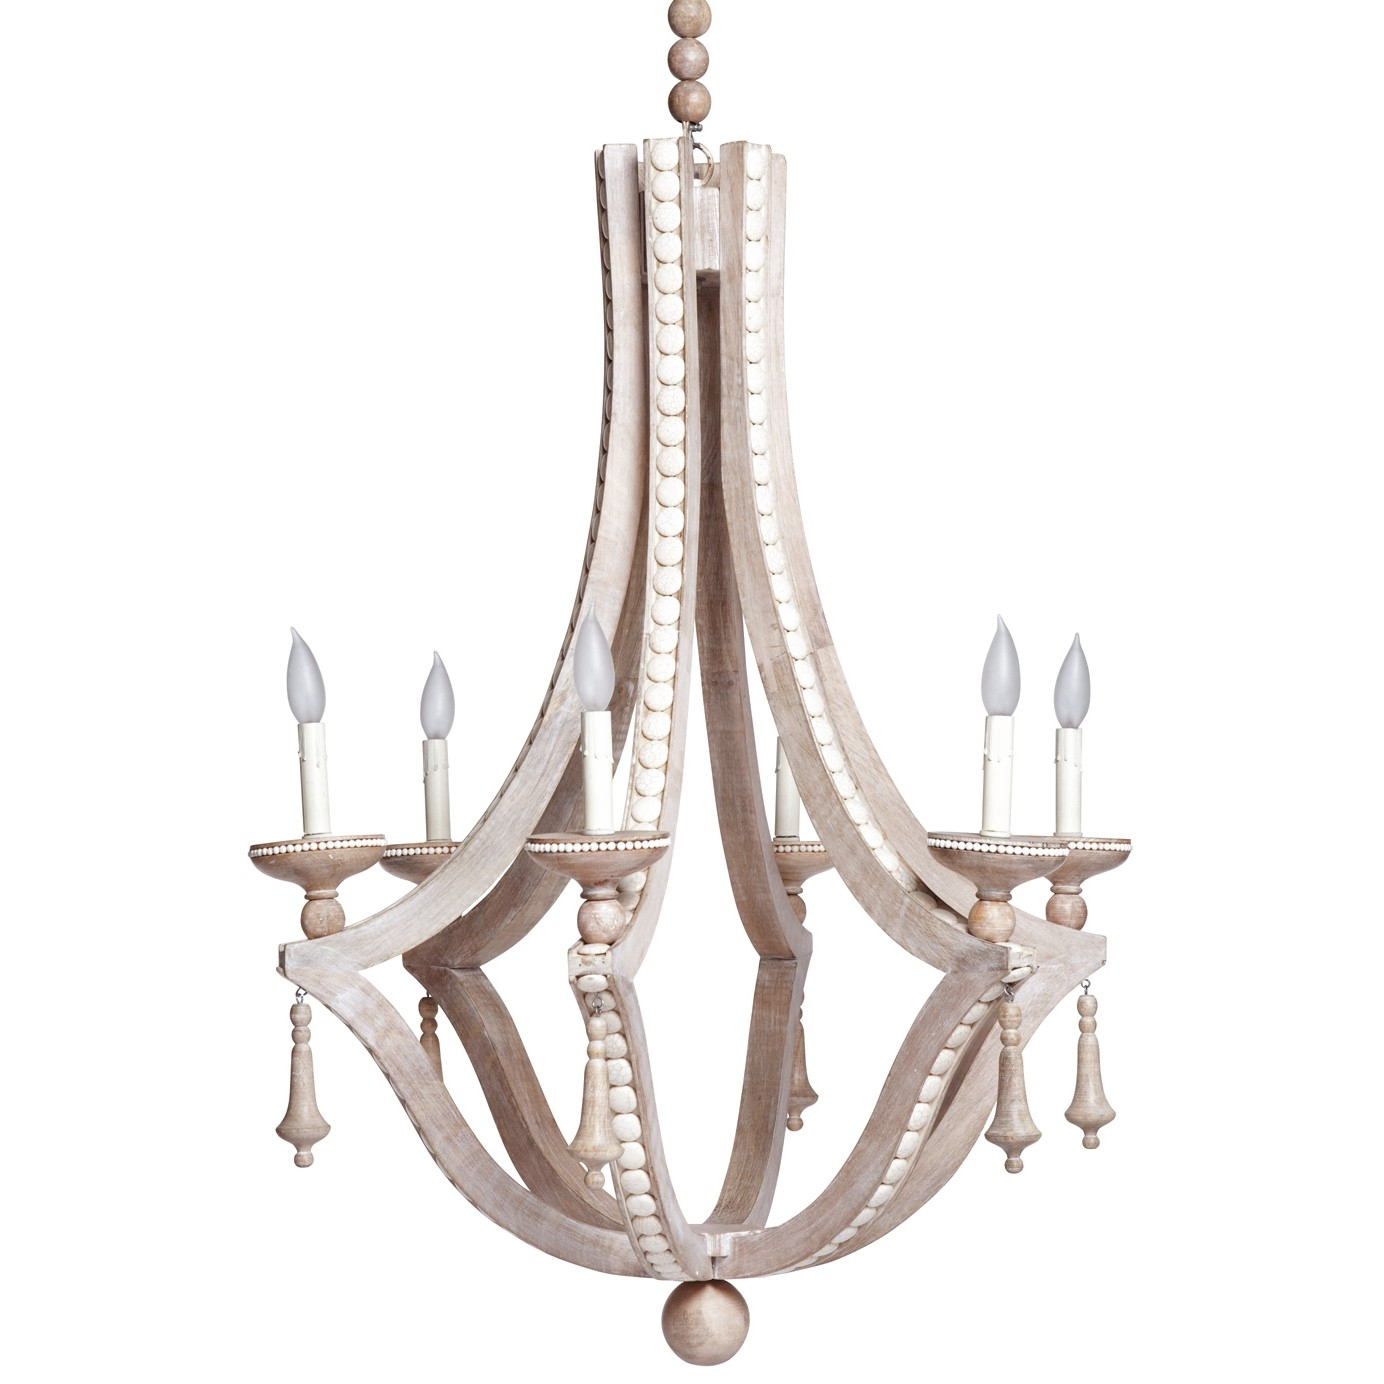 Popular Photo of Cream Chandelier